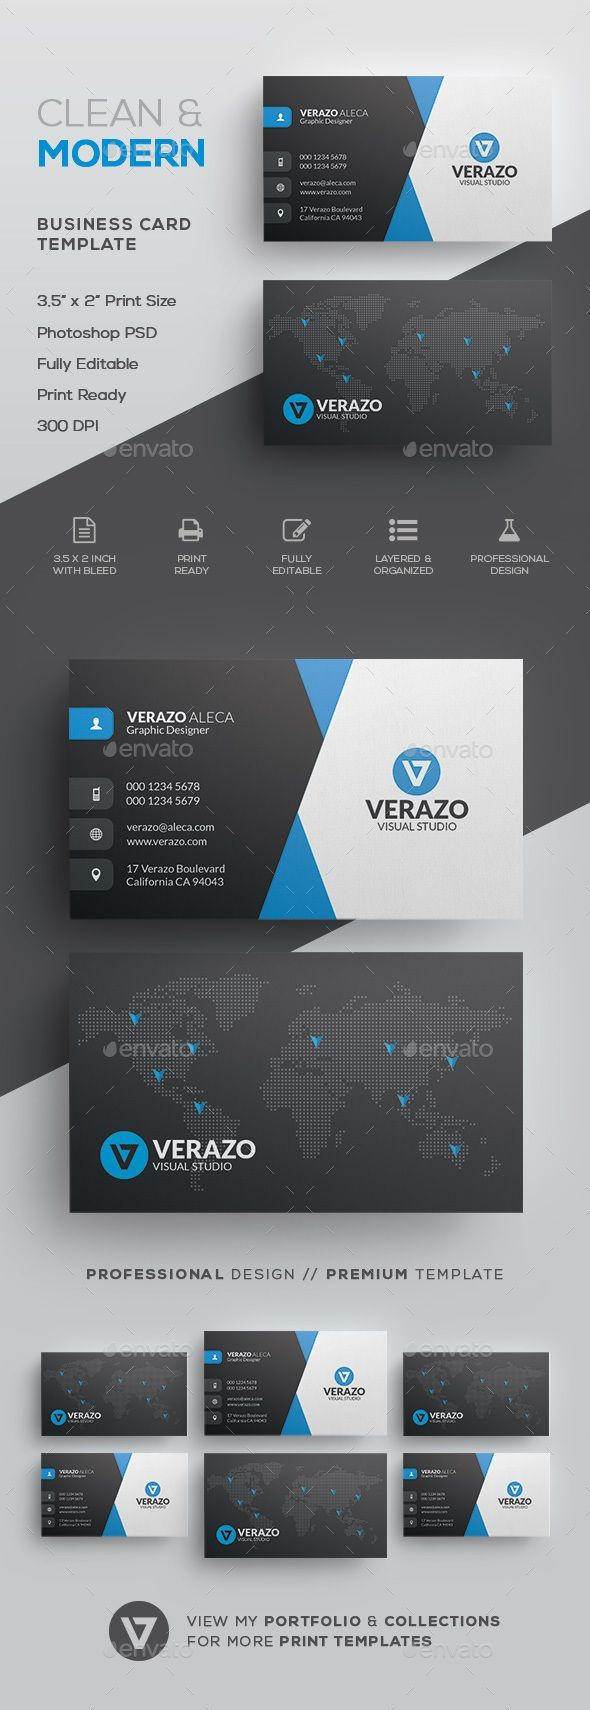 Templates business card template word online also business card templates business card template word online also business card design online free psd download in conjunction with avery business card template reheart